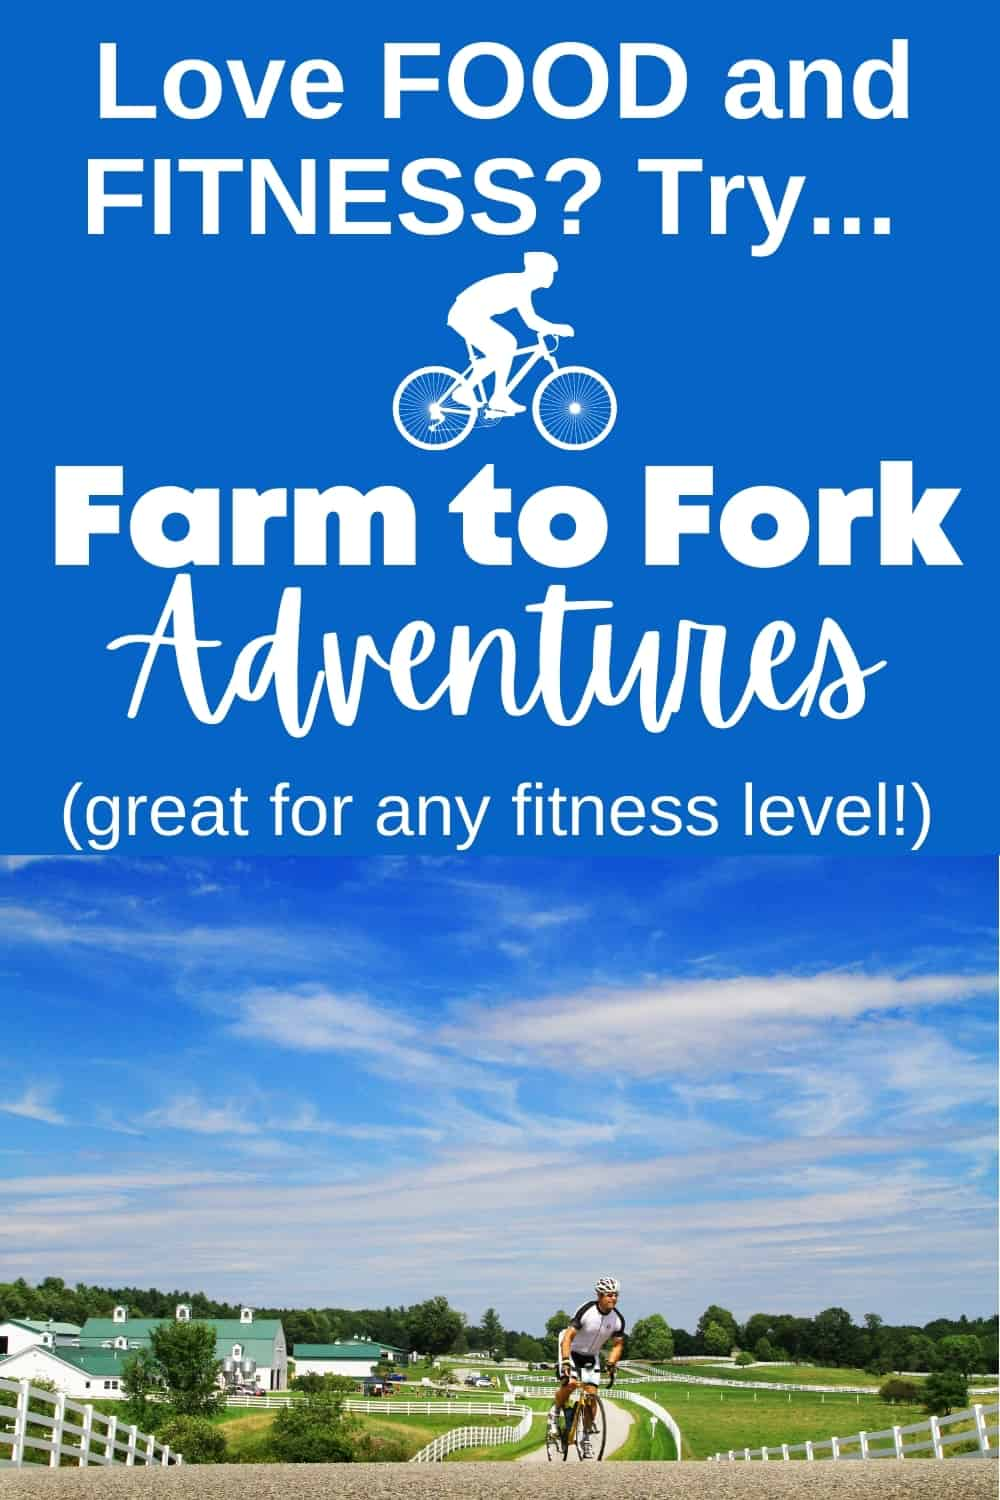 A man riding in a Farm to Fork Fondo race event on a beautiful day.